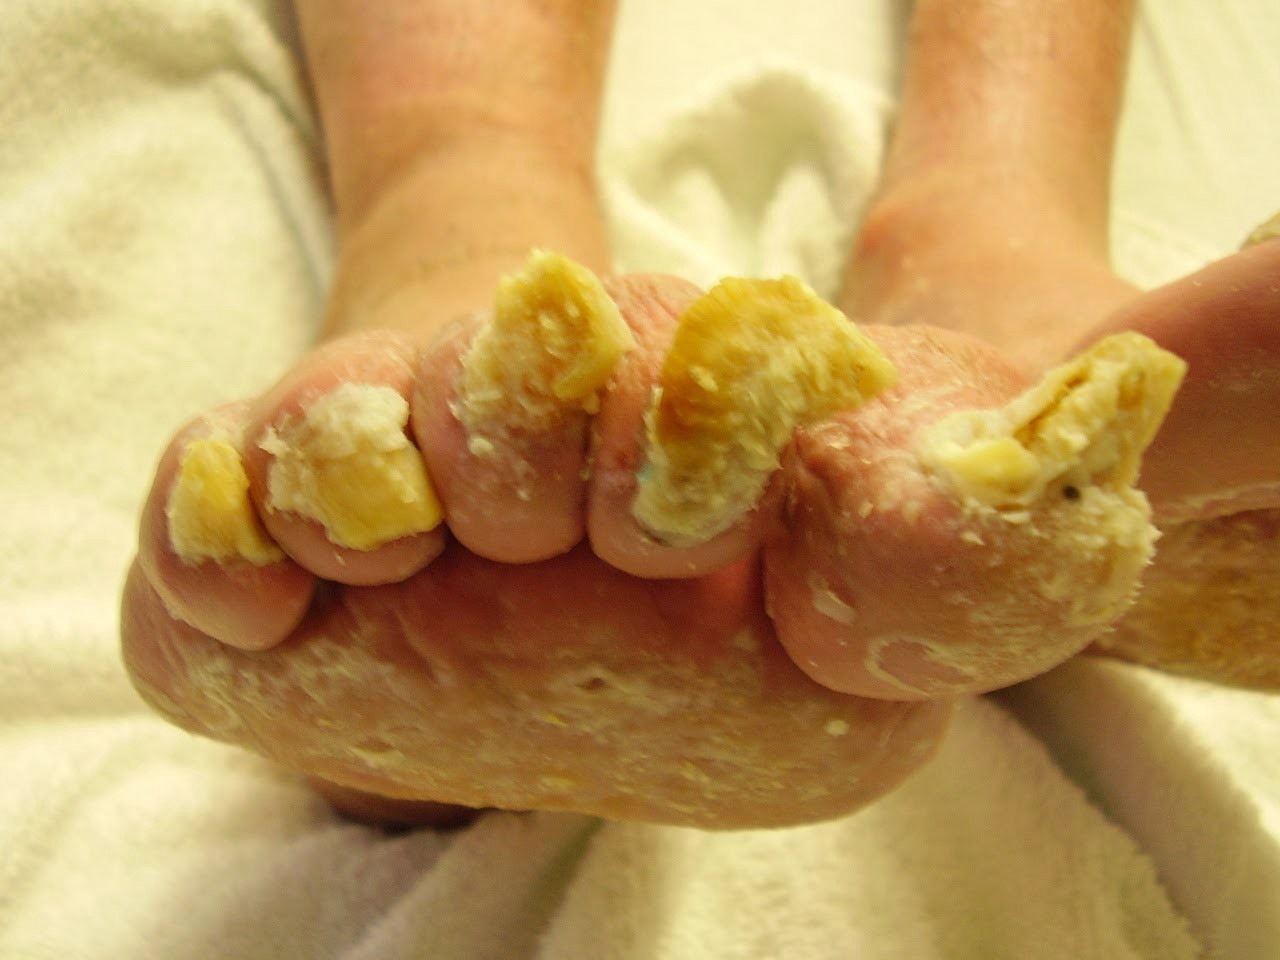 Nail Fungus Revealed Cathy Robbins Fungual Elimination Guide 2017